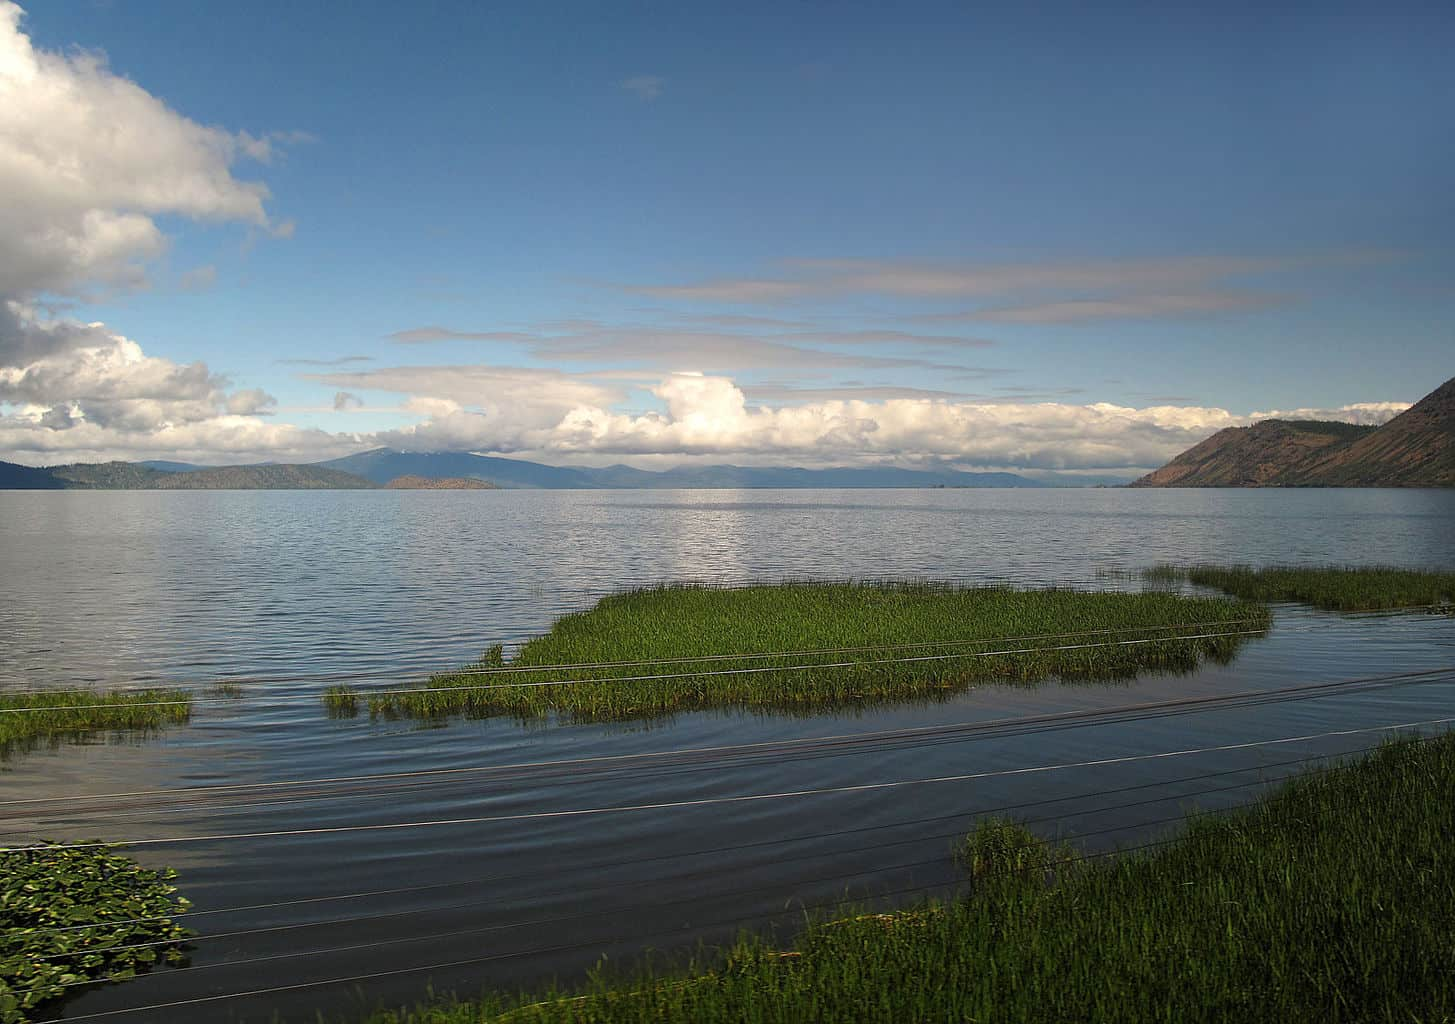 upper klamath lake grows some of the biggest rainbow trout in the united states